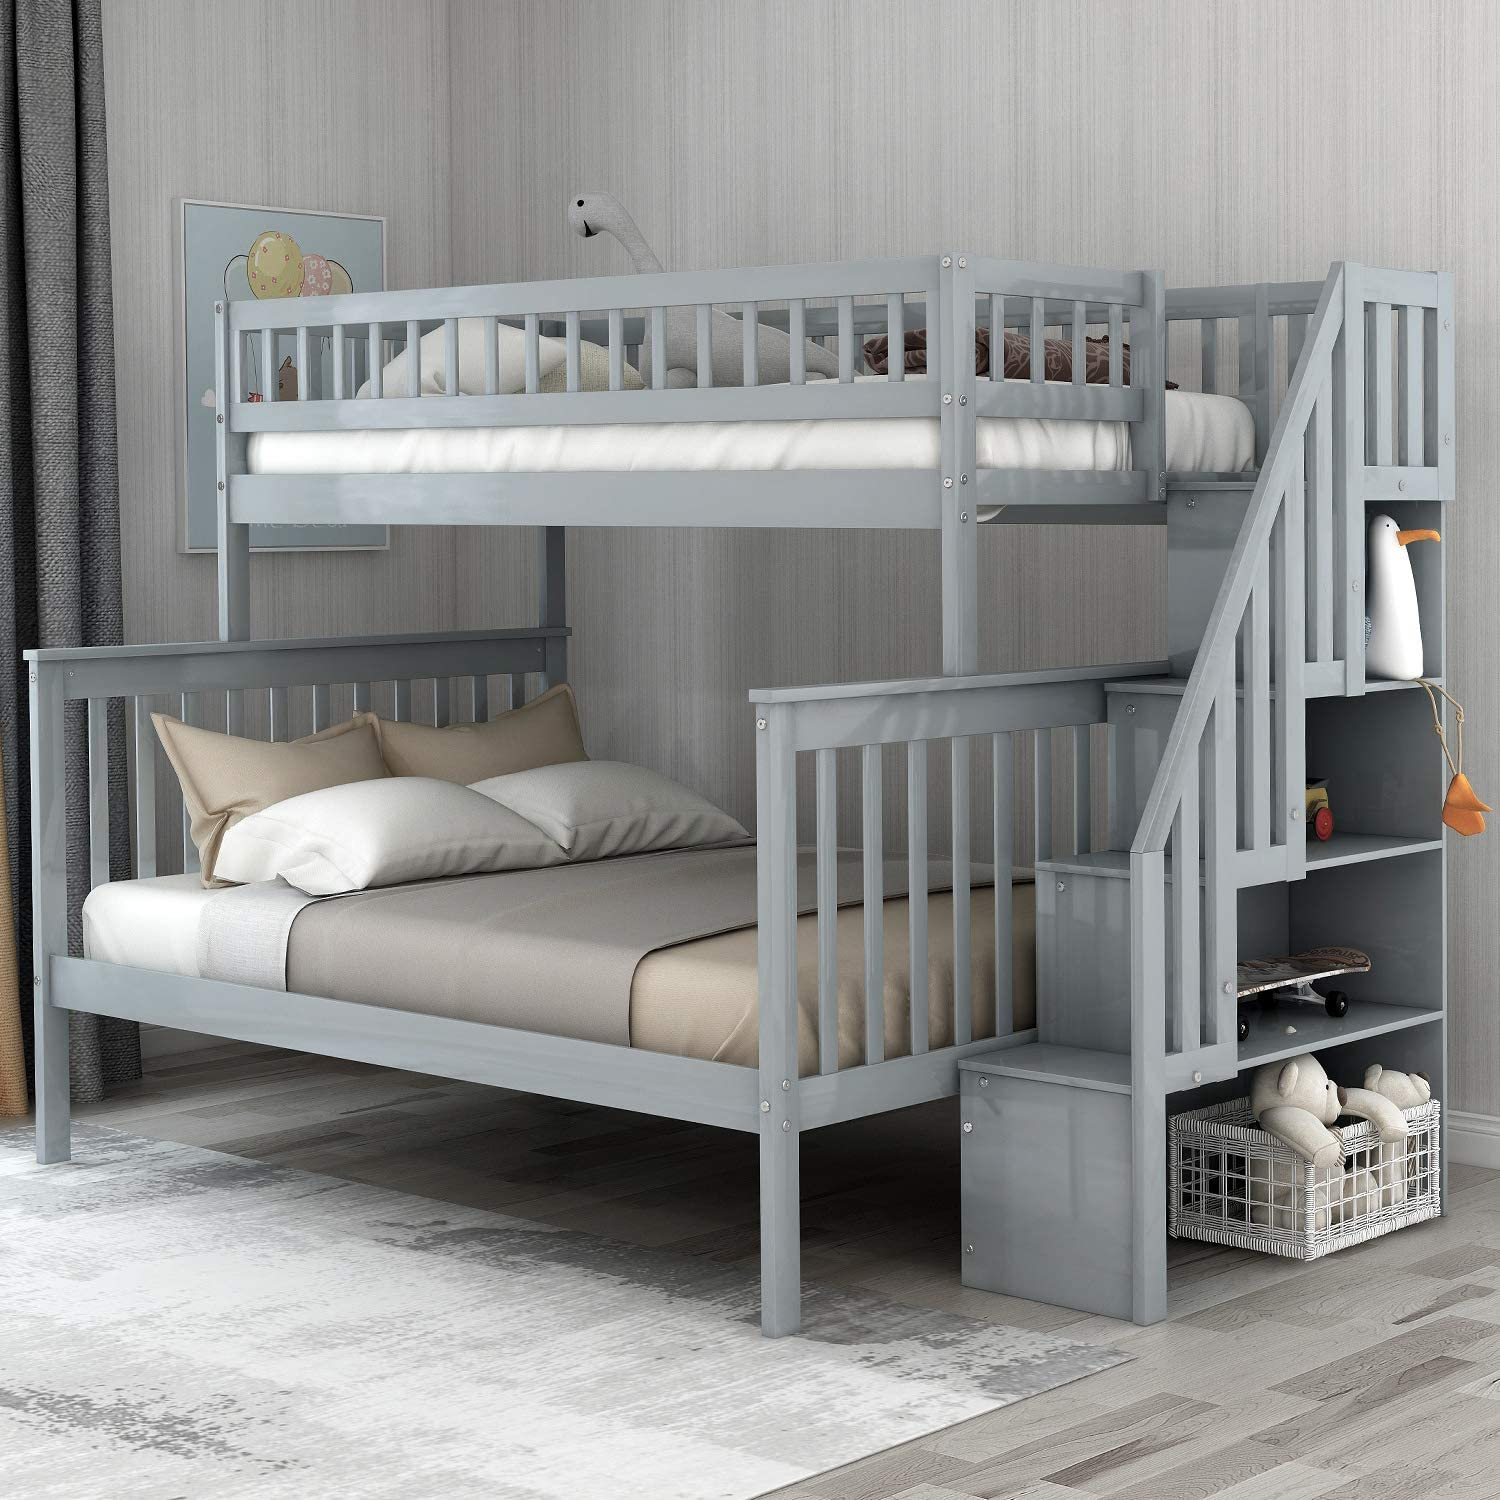 Amazon Com Twin Over Full Bunk Bed For Kids With Storage And